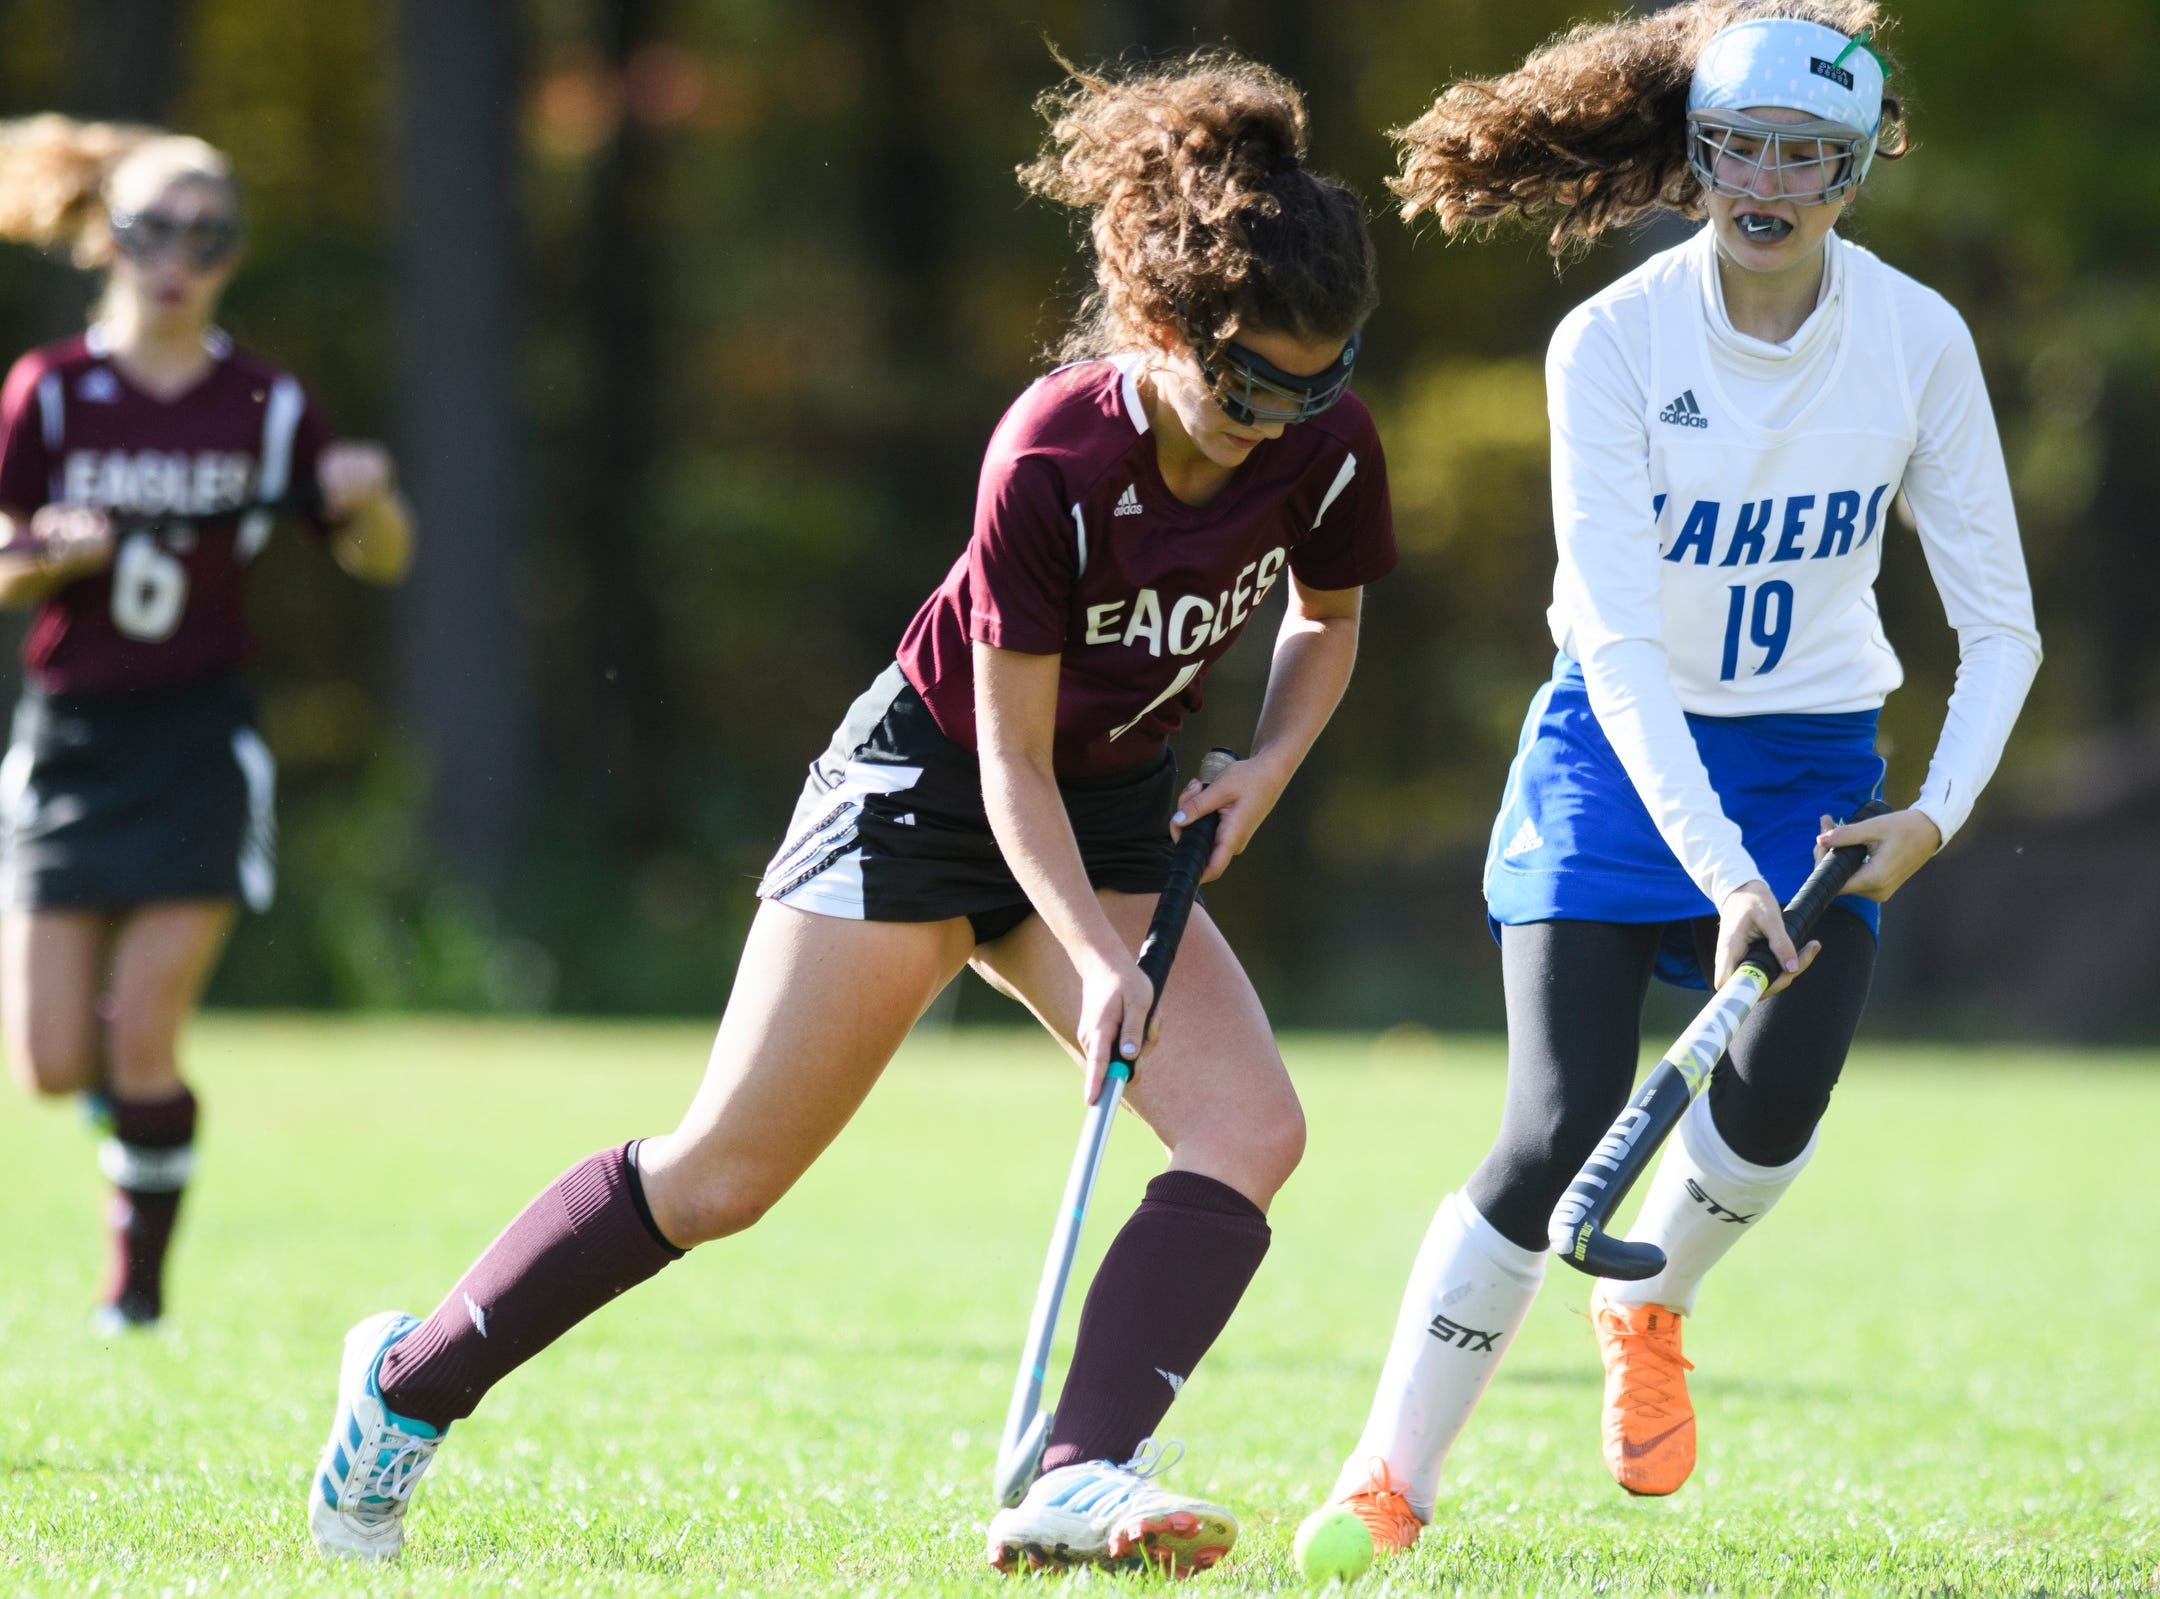 Mt. Abraham's Casondra Dykstra (4) runs down the field with the ball past Colchester's Piper Kendrick (19) during the field hockey game between Mount Abraham and Colchester at Colchester High School on Saturday morning October 20, 2018 in Colchester.